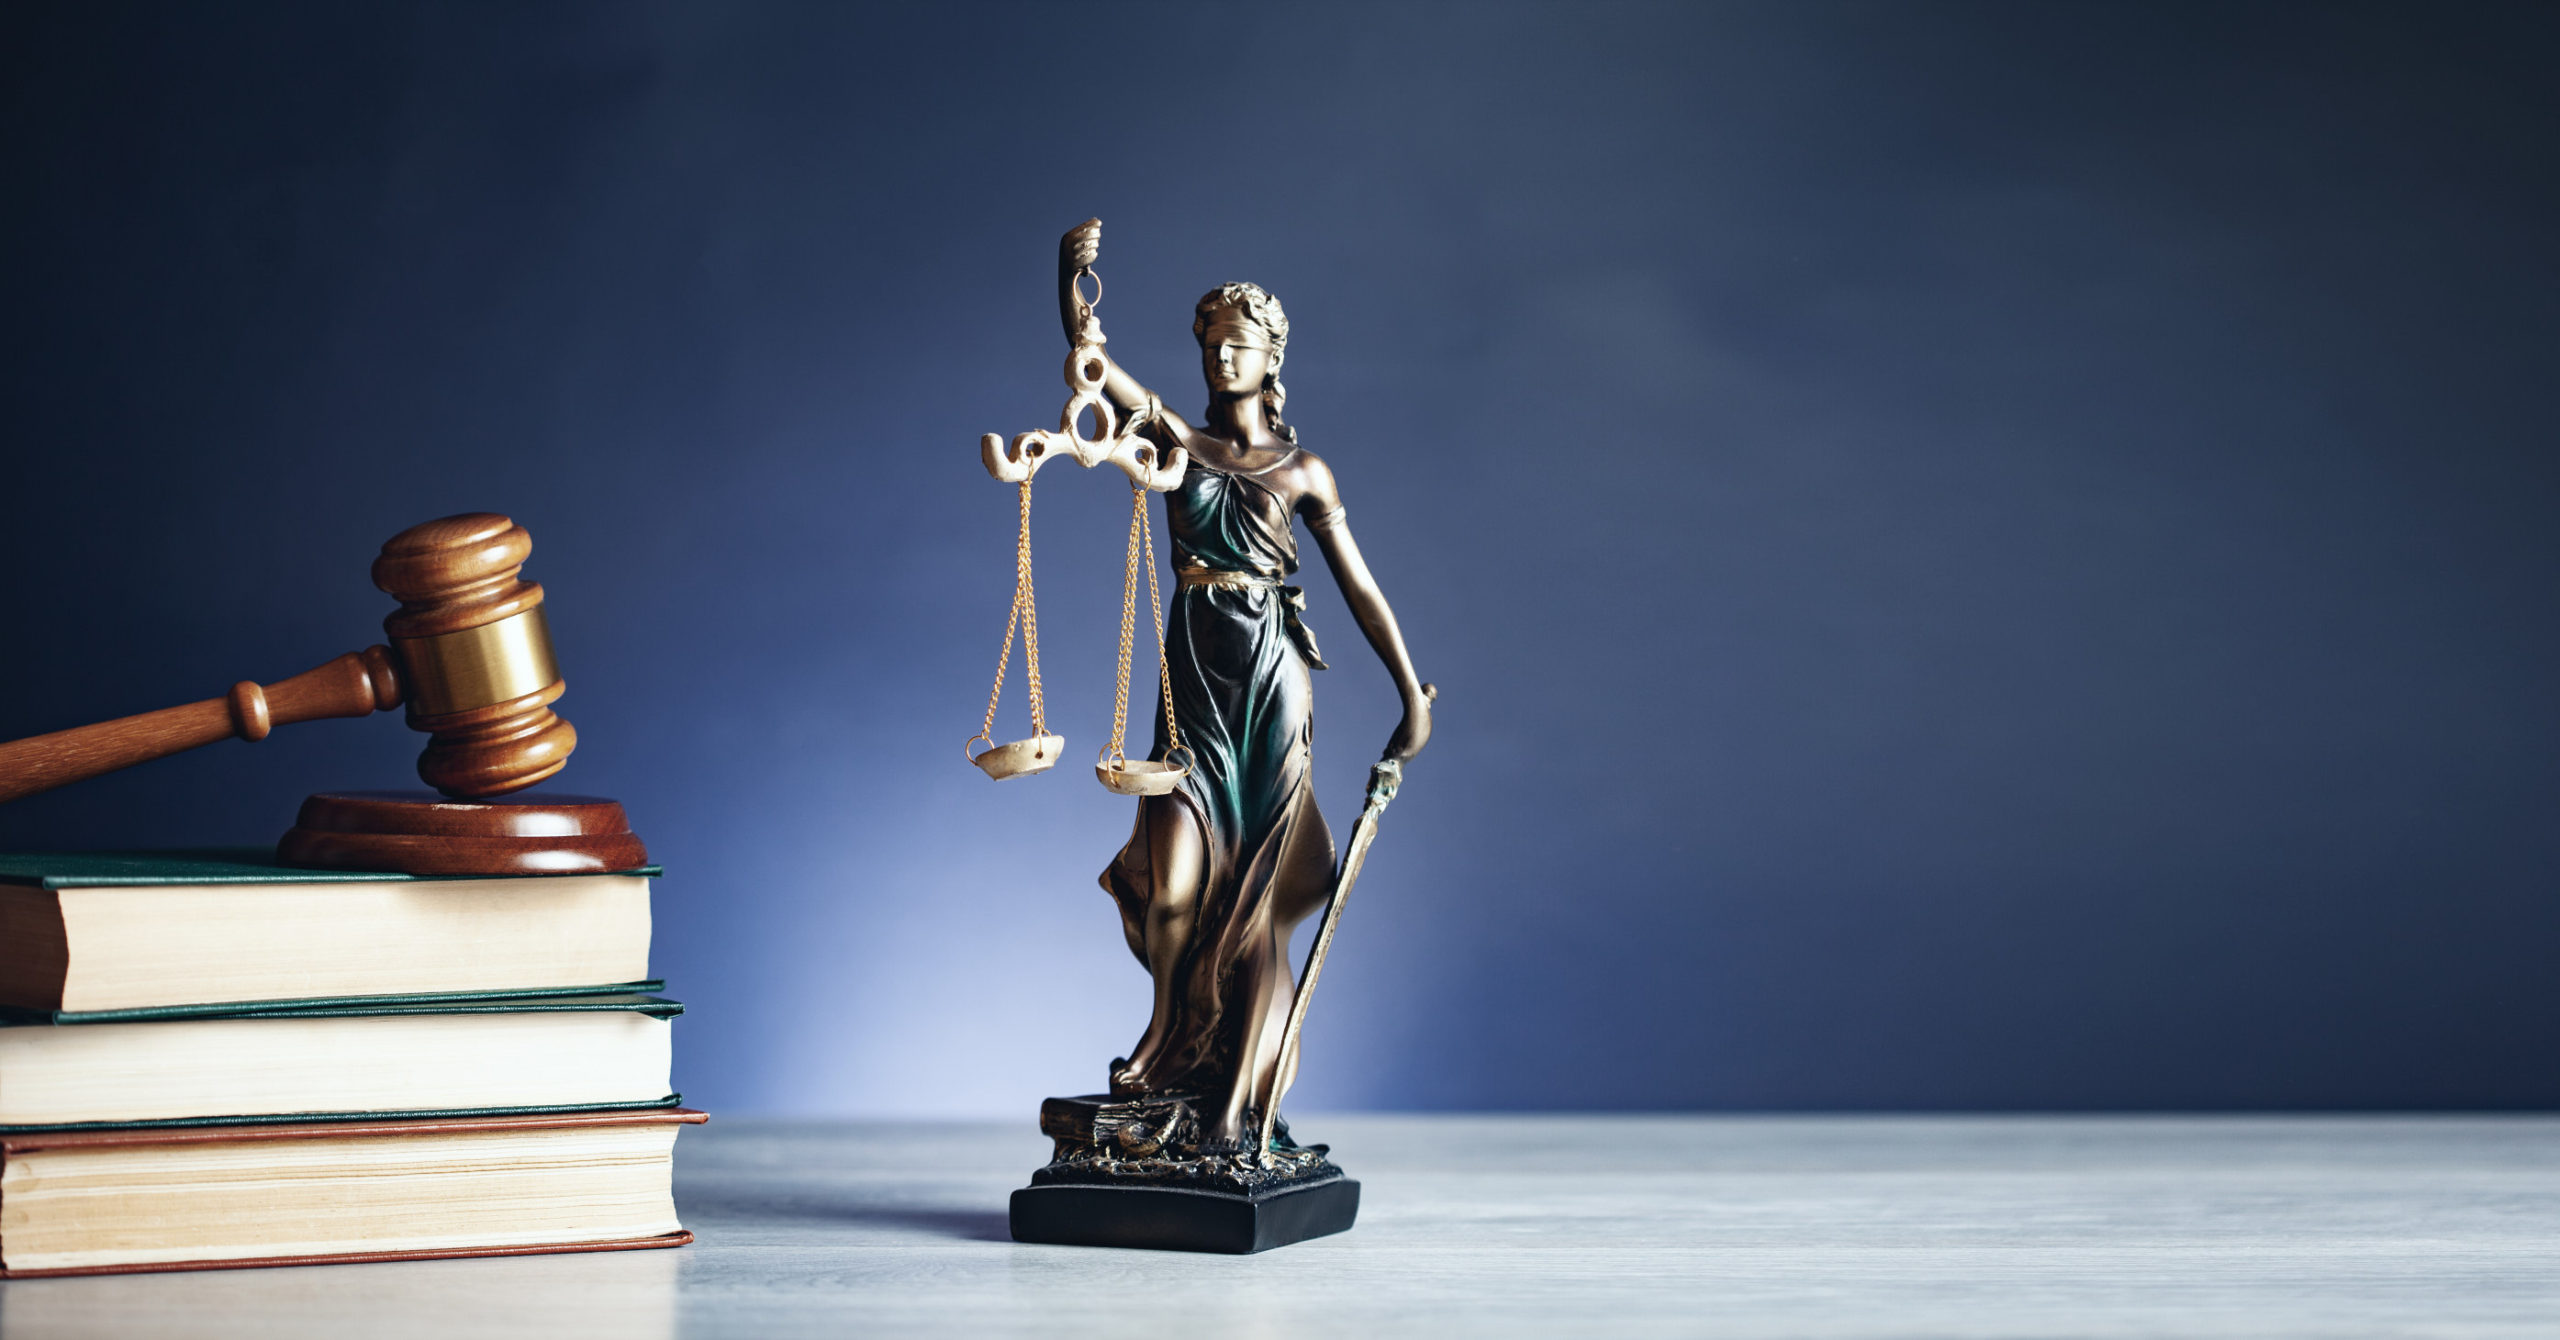 https://www.freepik.com/premium-photo/lady-justice-with-hammer-book_9102242.htm#page=1&query=law&position=20